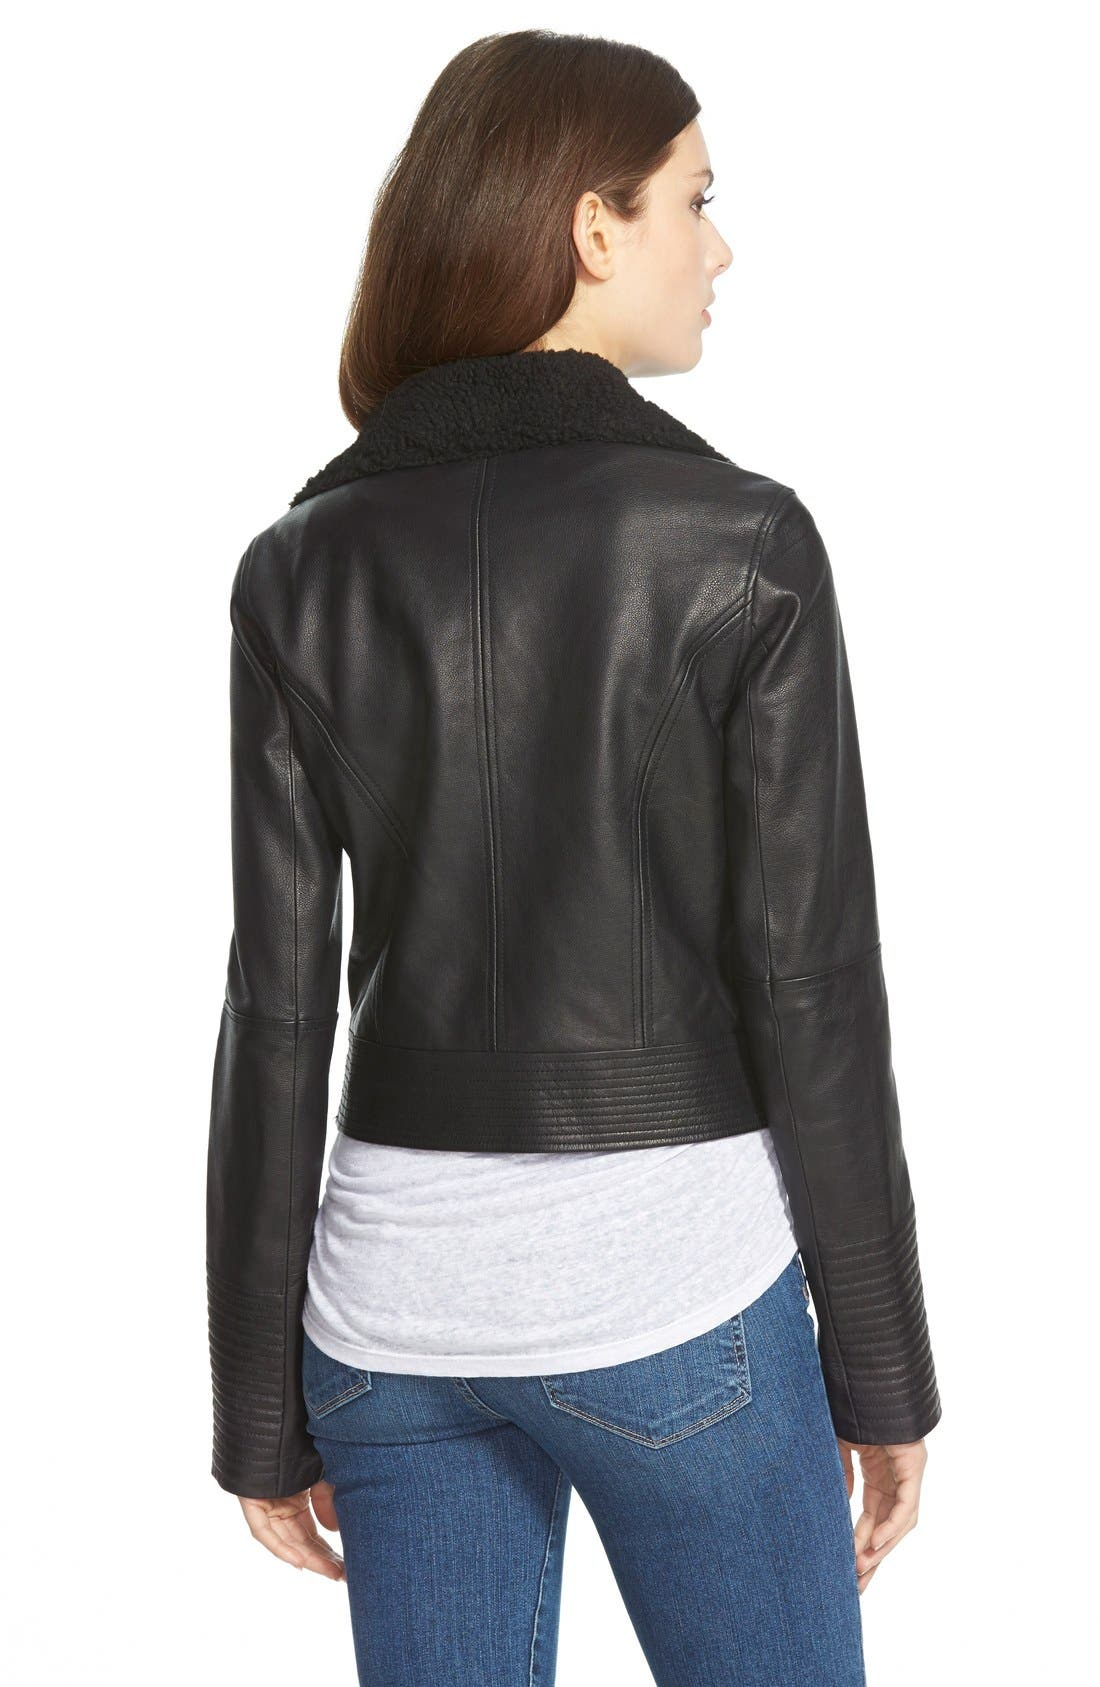 Denim 'Rooney' Leather Jacket with Faux Shearling Collar,                             Alternate thumbnail 2, color,                             Black